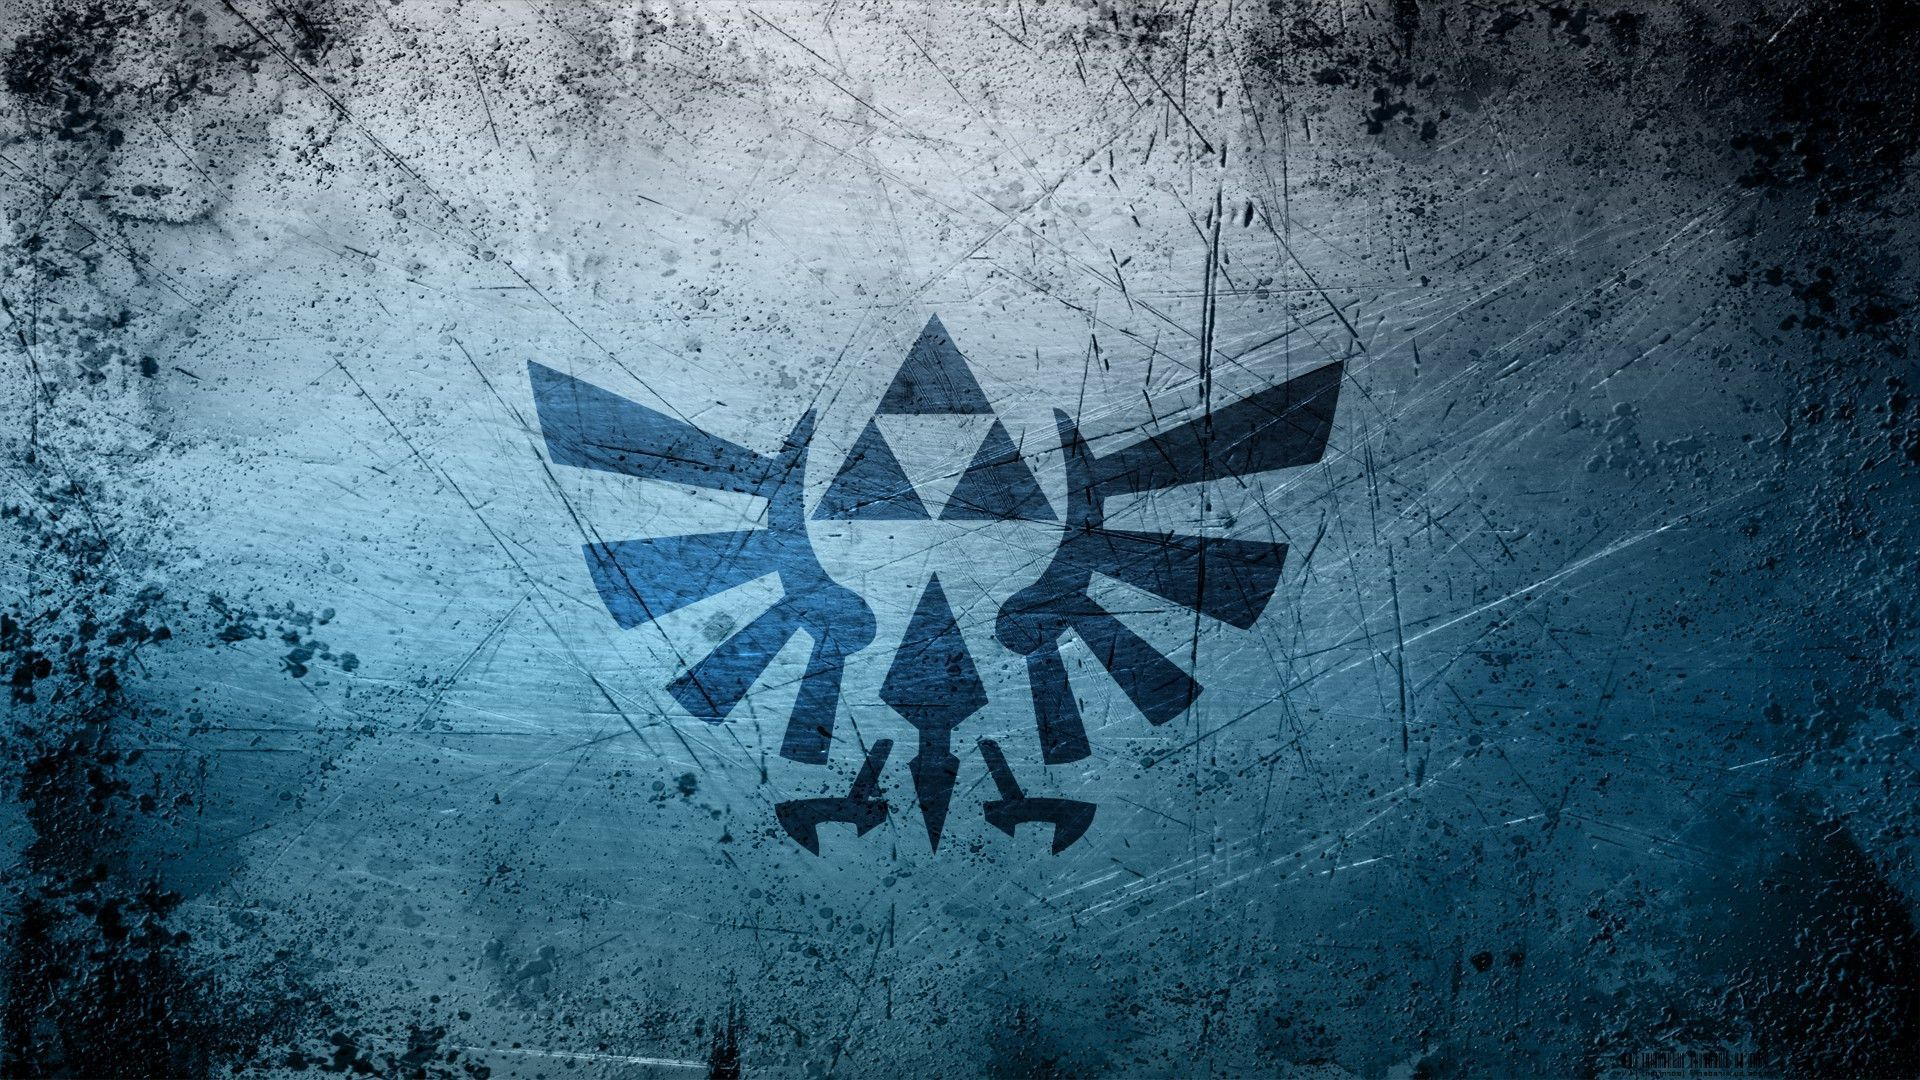 Hyrule Castle Symbol With Images Gaming Wallpapers Zelda Hd